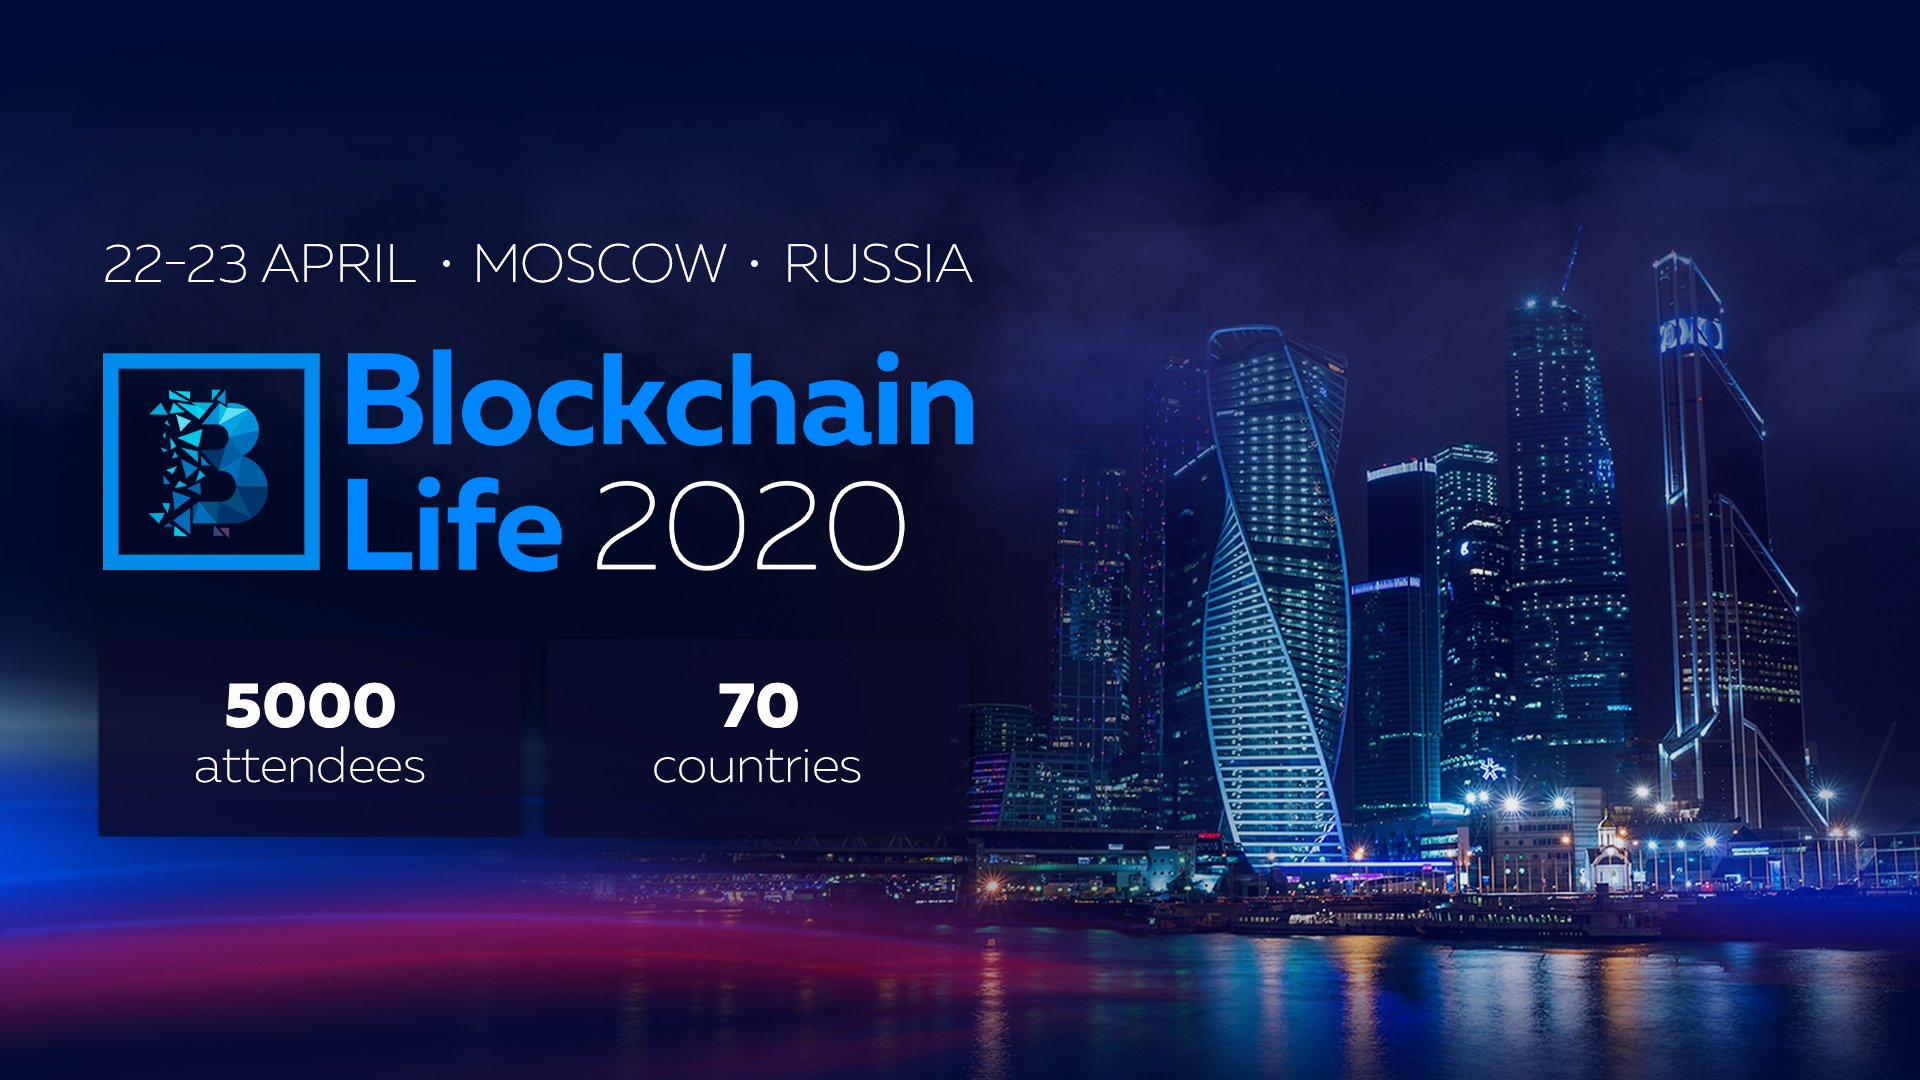 5th International Forum Blockchain Life 2020 Takes Place on April 22-23 in Moscow